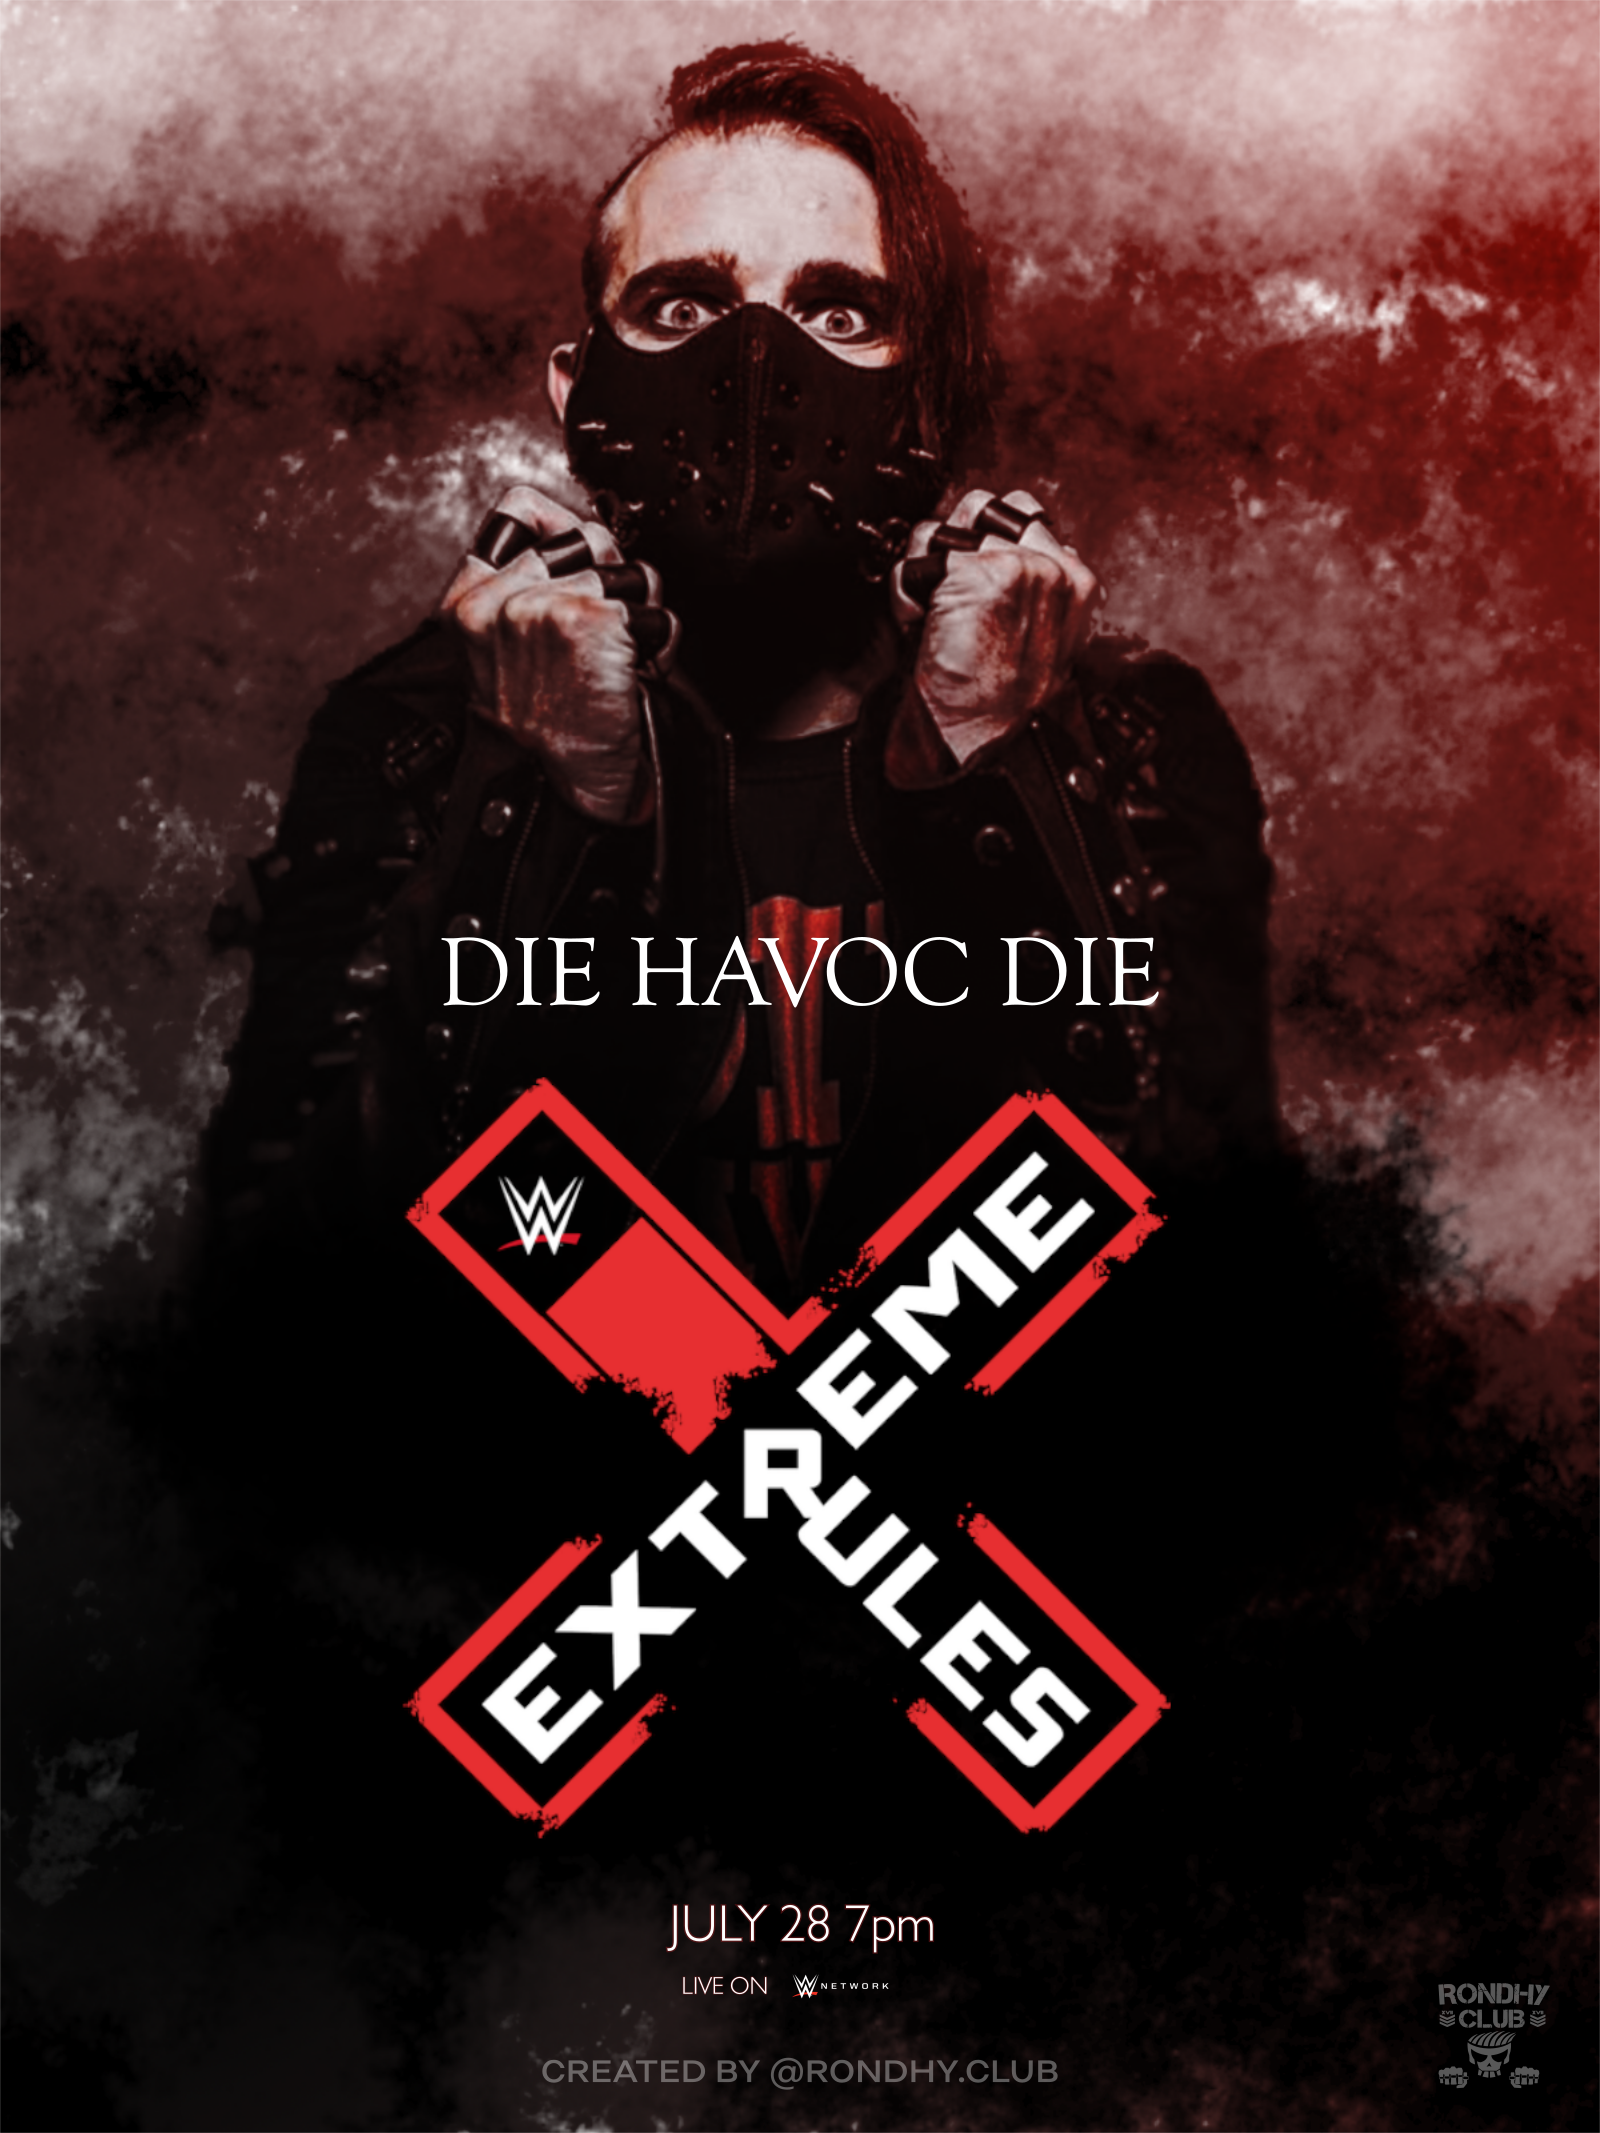 Pro Wrestling Extreme Rules 2019 Wwe Ppv Jimmy Havoc Fan Art By Rondhy Club Rondhyoliveira Prowrestling Design Wwe Ppv Poster Wrestling Ar